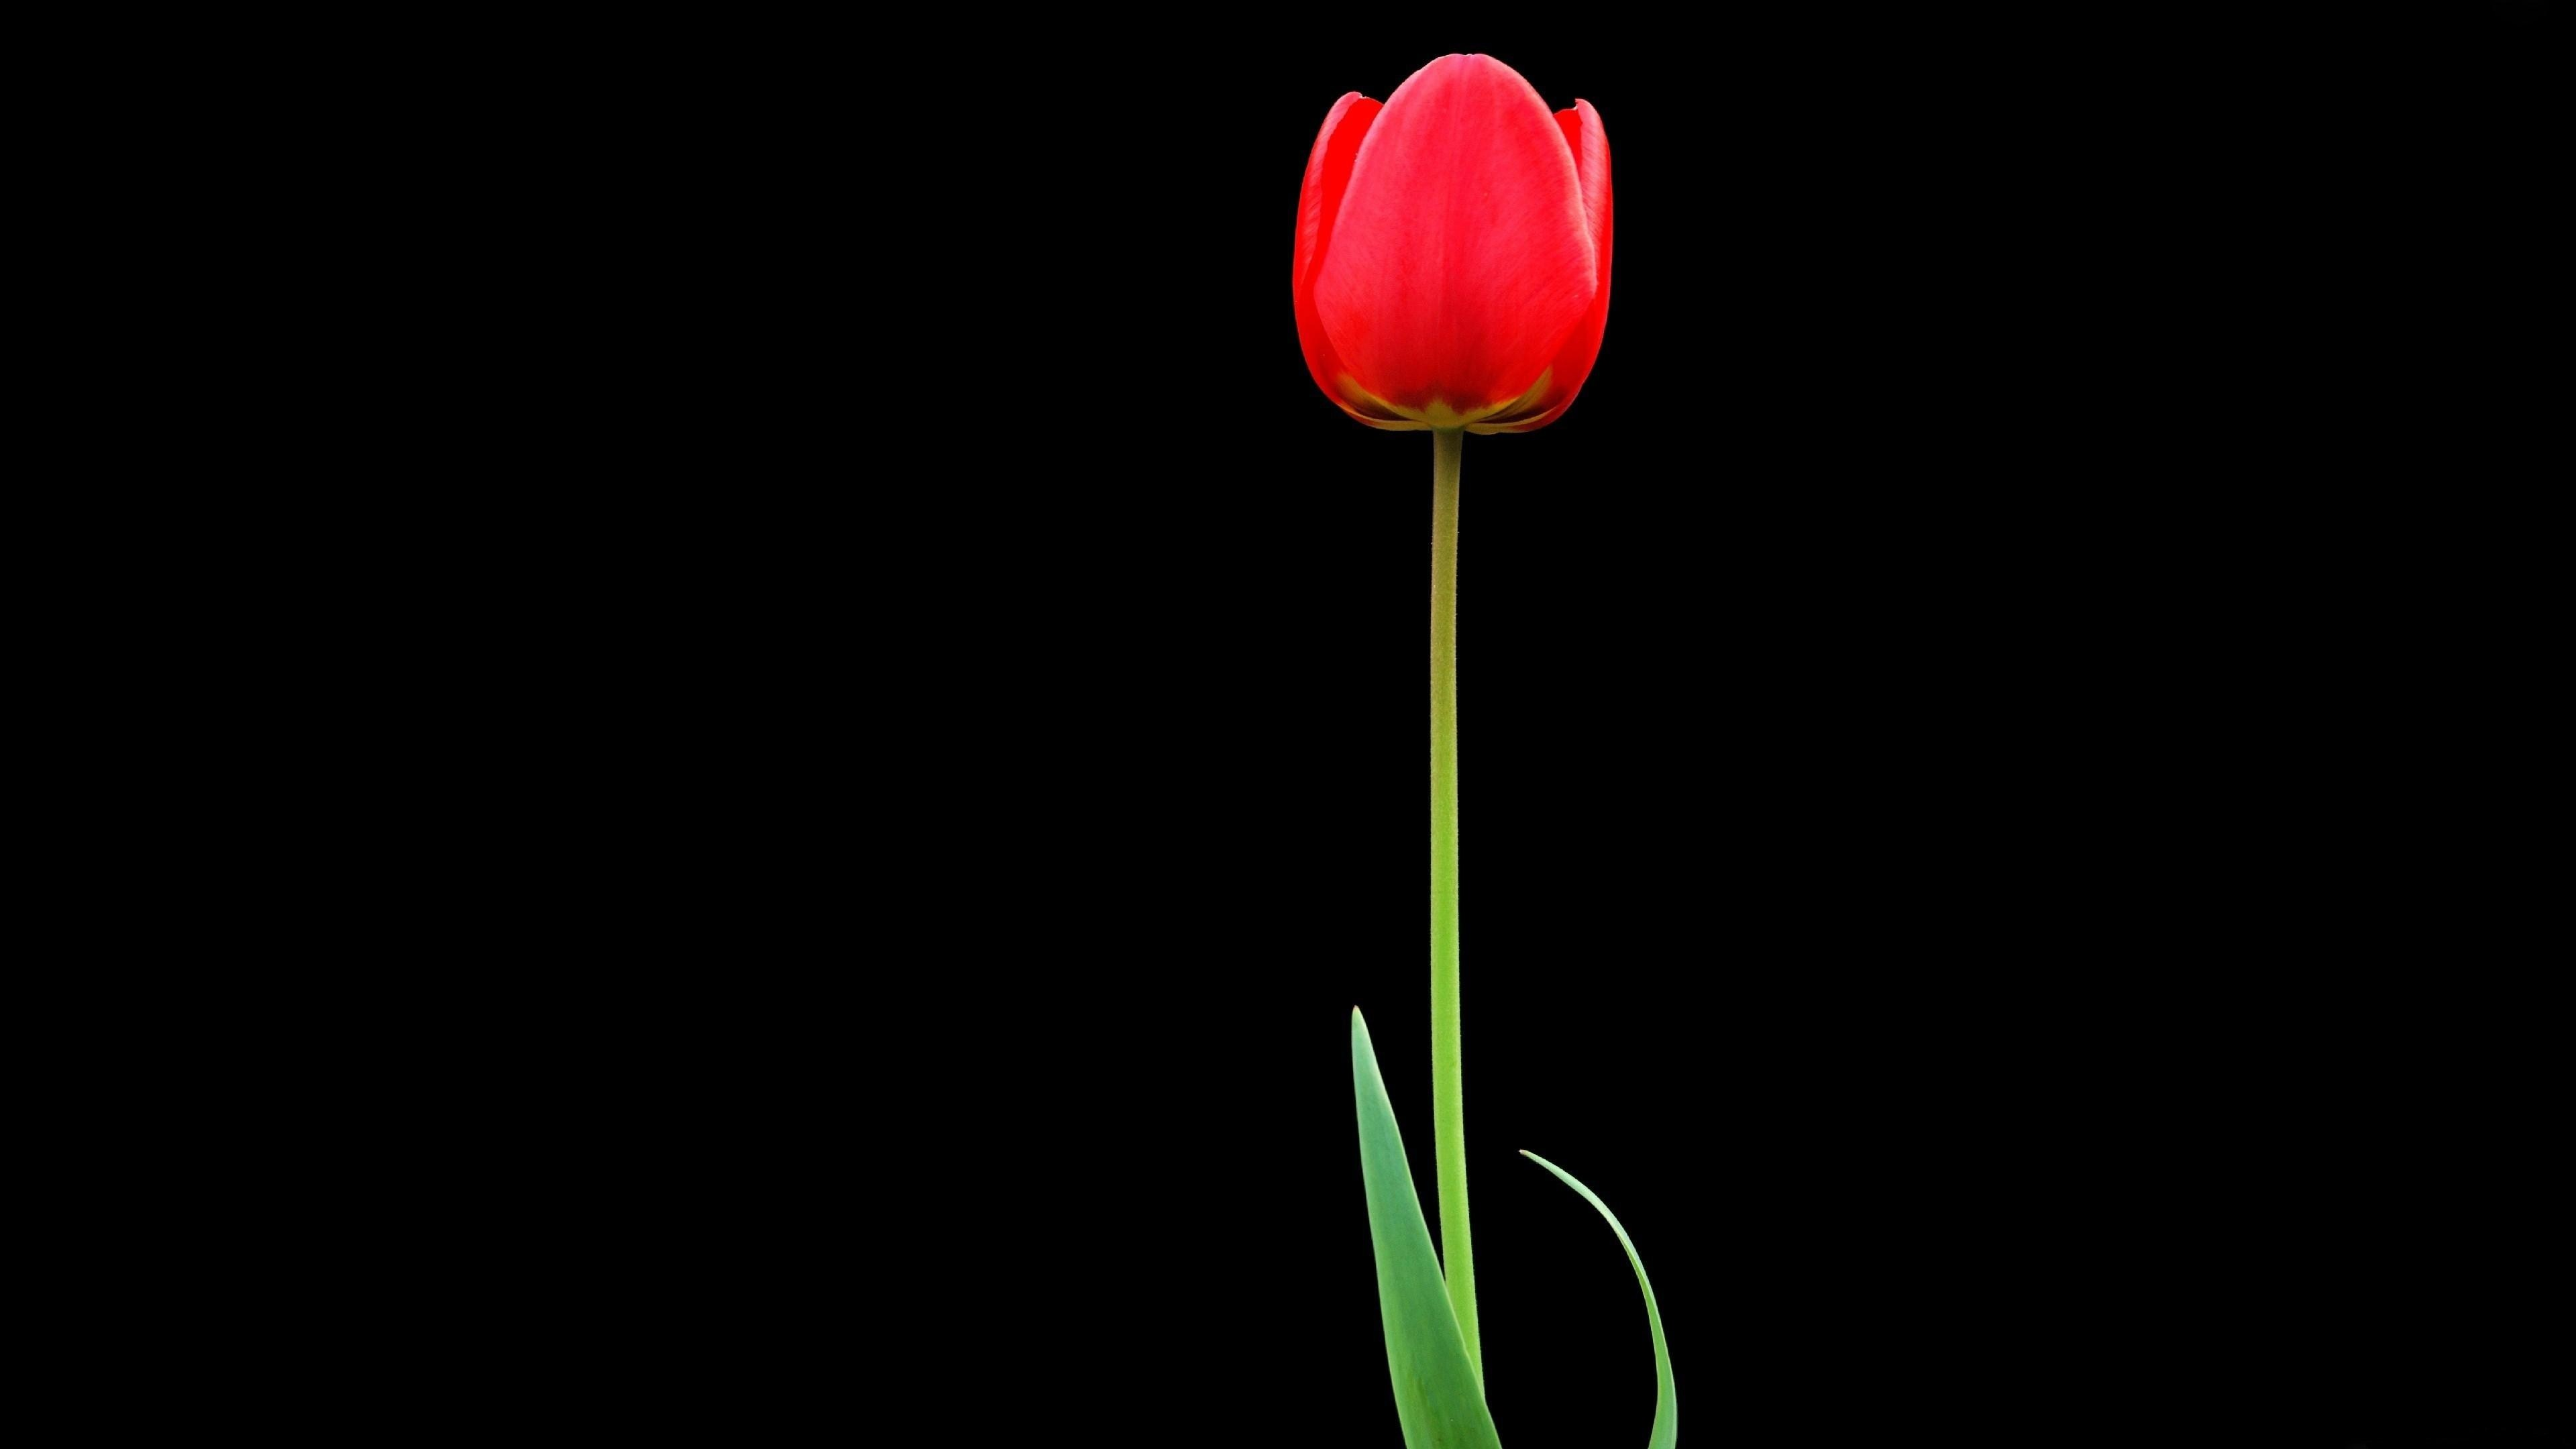 3d Flower Wallpapers For Iphone Tulip Red Flower 4k Ultra Hd Wallpaper 3840x2160